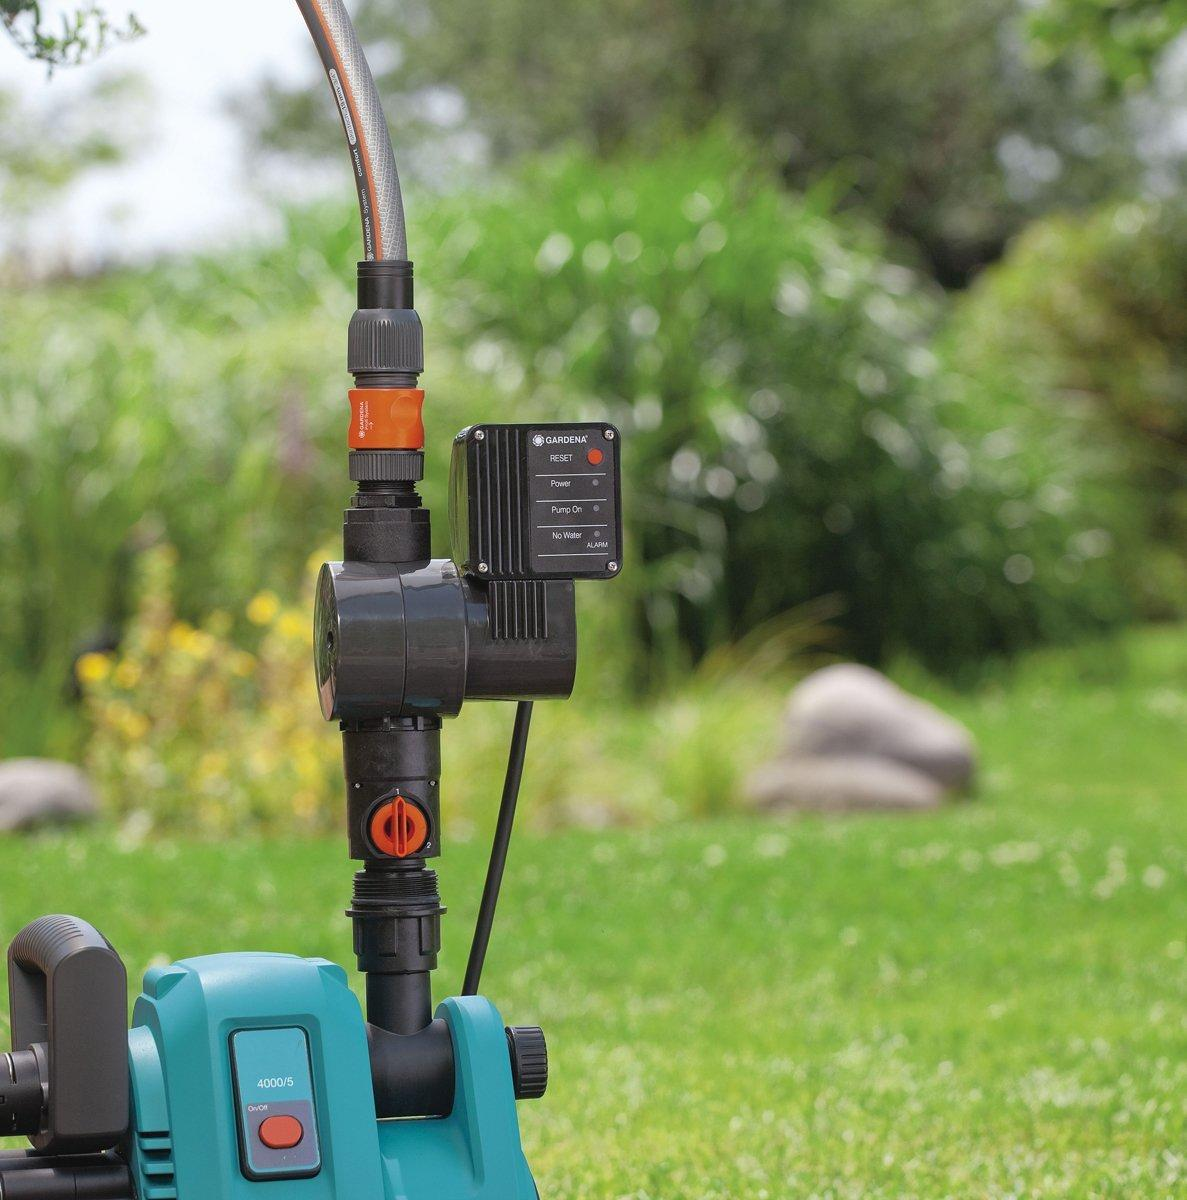 elektronischer druckschalter gardena 1739 20 mit. Black Bedroom Furniture Sets. Home Design Ideas